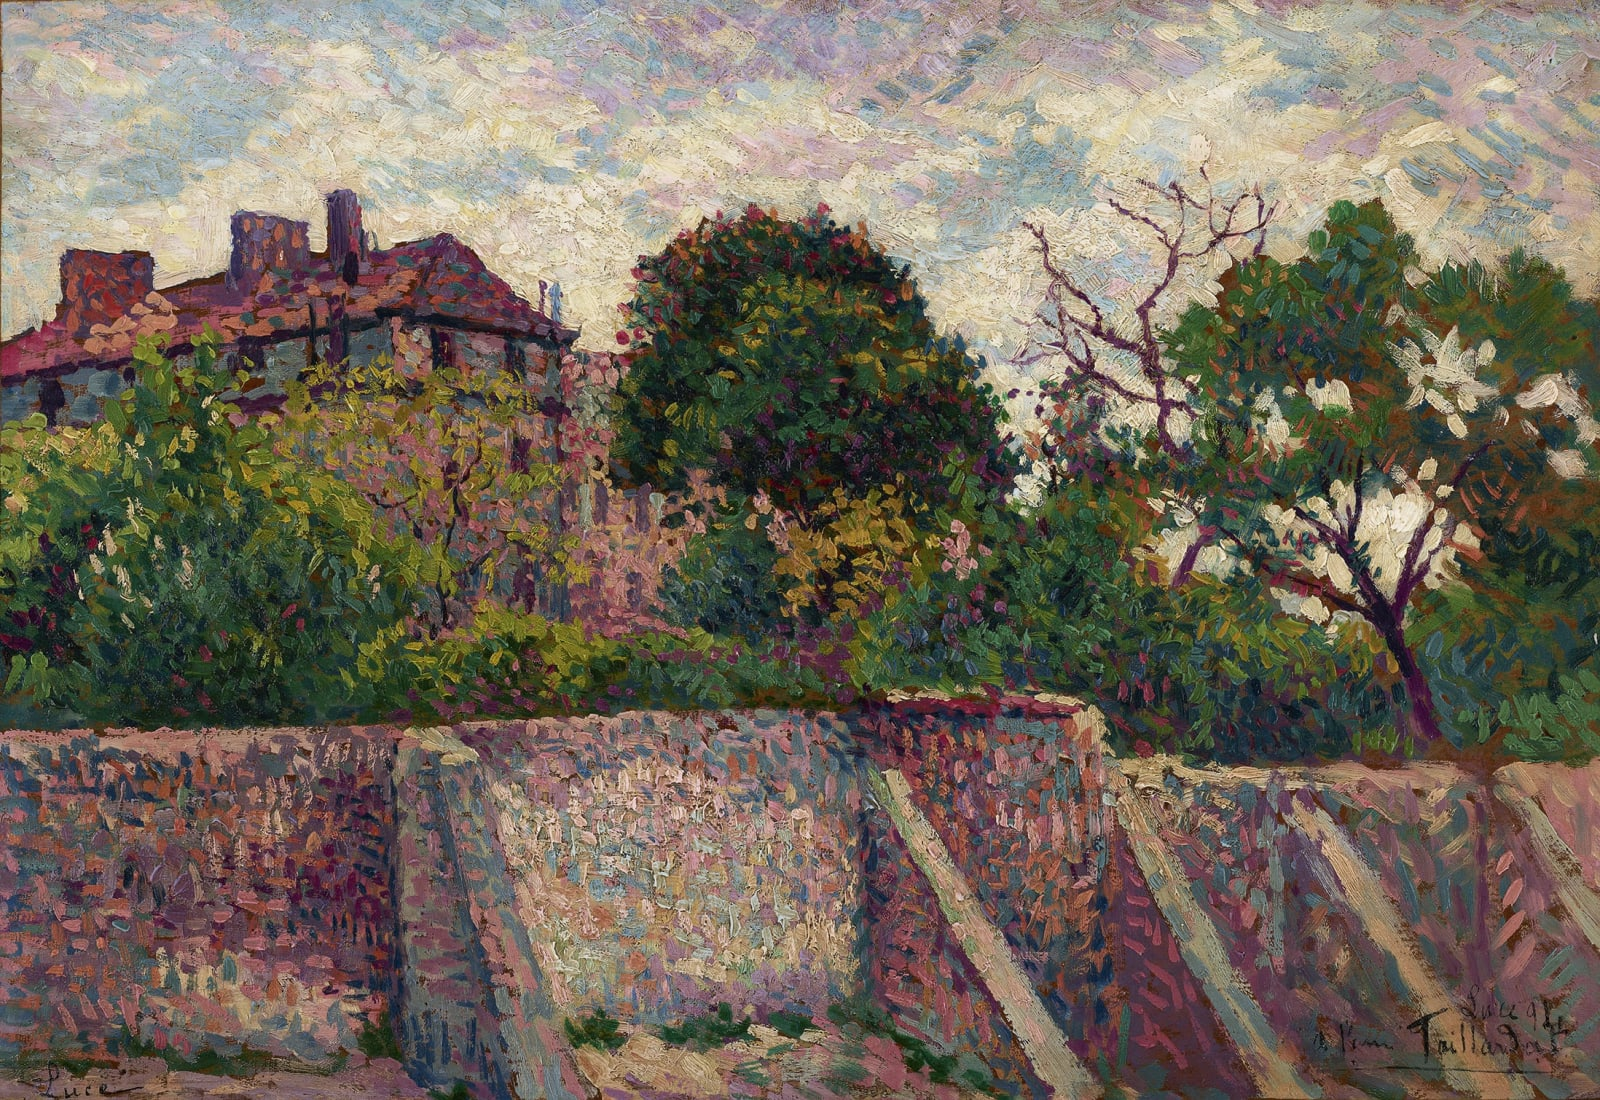 Maximilien Luce (1858-1941) Montmartre rue des Saules, 1894 Oil on canvas 27.1 x 39.1 cm 10 5/8 x 15 3/8 inches Signed lower left Luce and dedicated lower right Luce 94, à l'ami Taillardat Sold by the gallery Archives Stoppenbach & Delestre